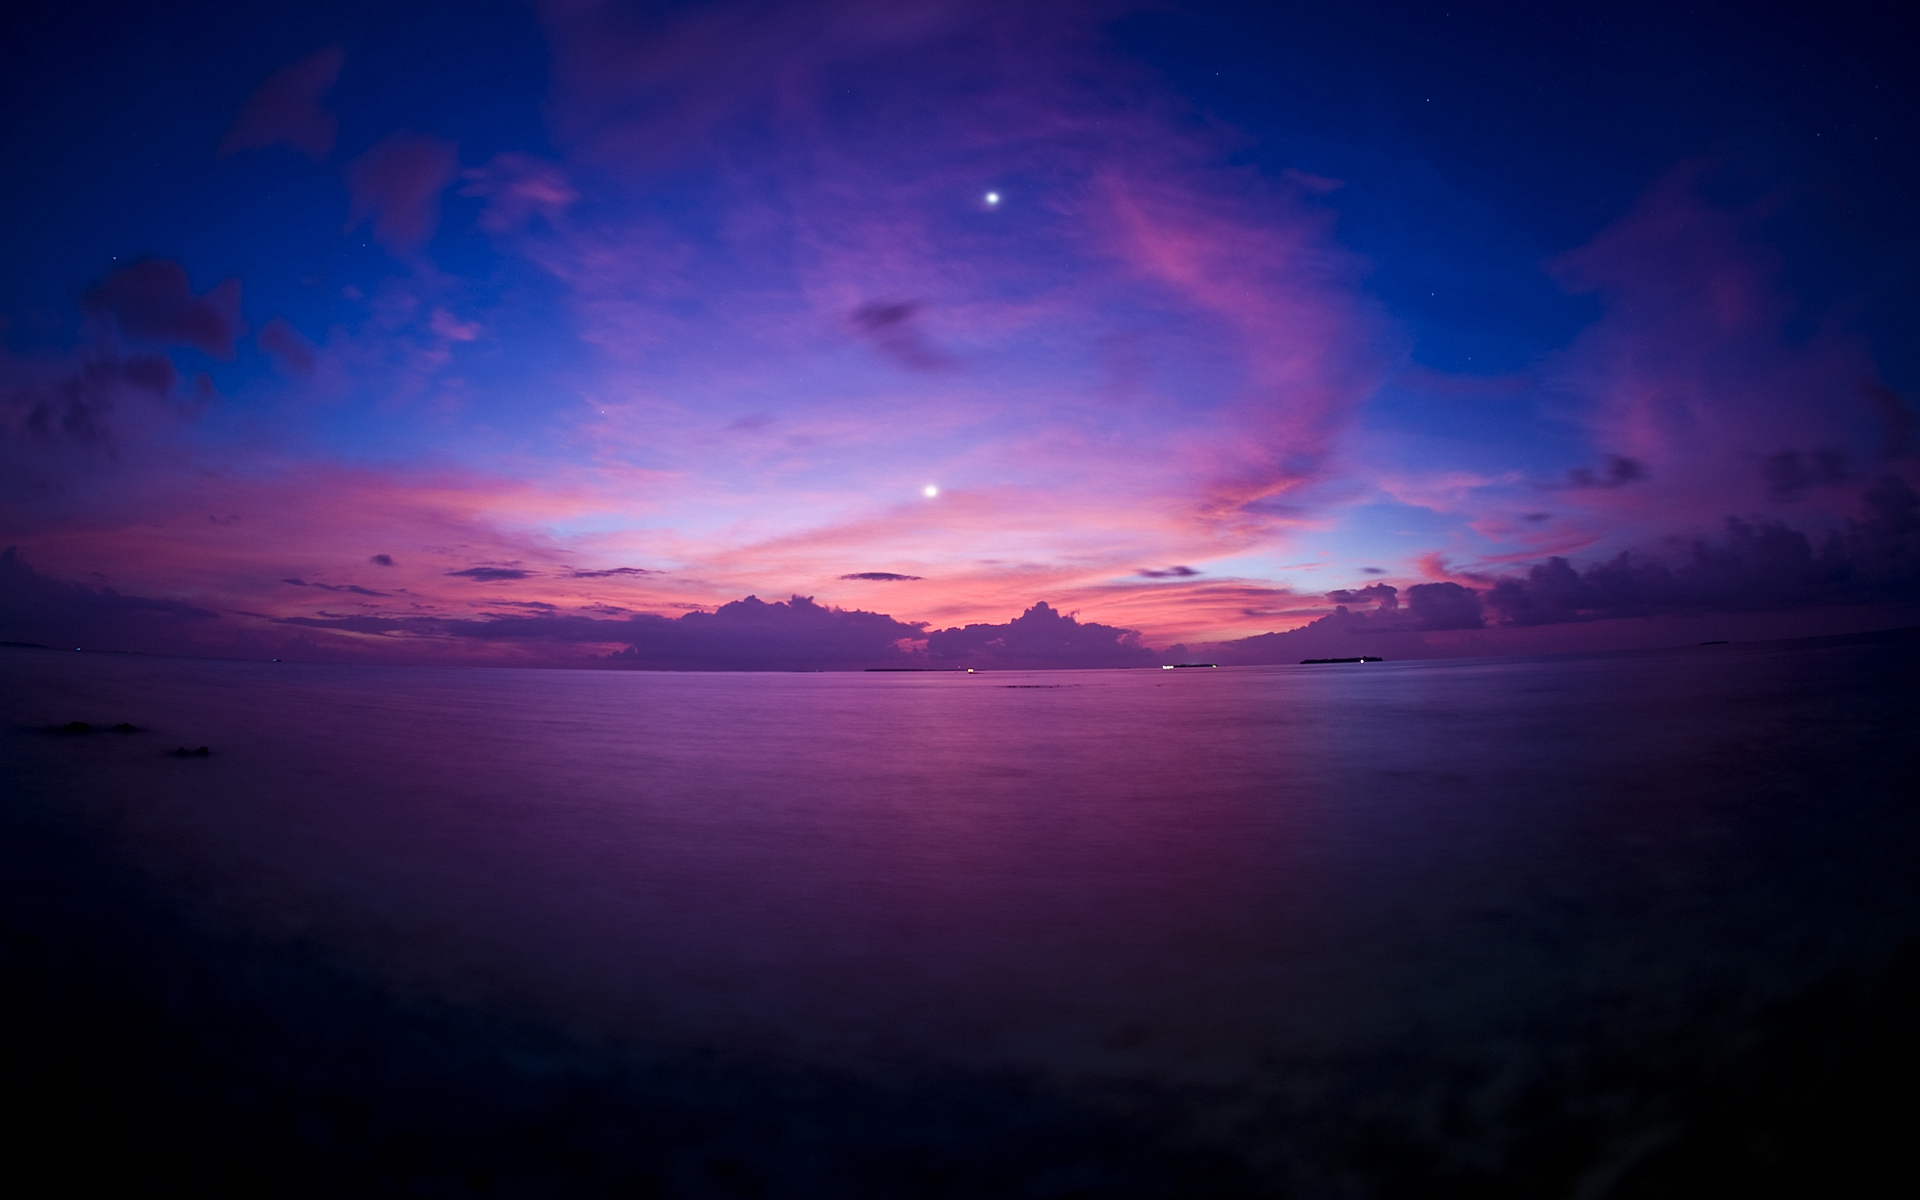 Purple Sunset Wallpapers | HD Wallpapers